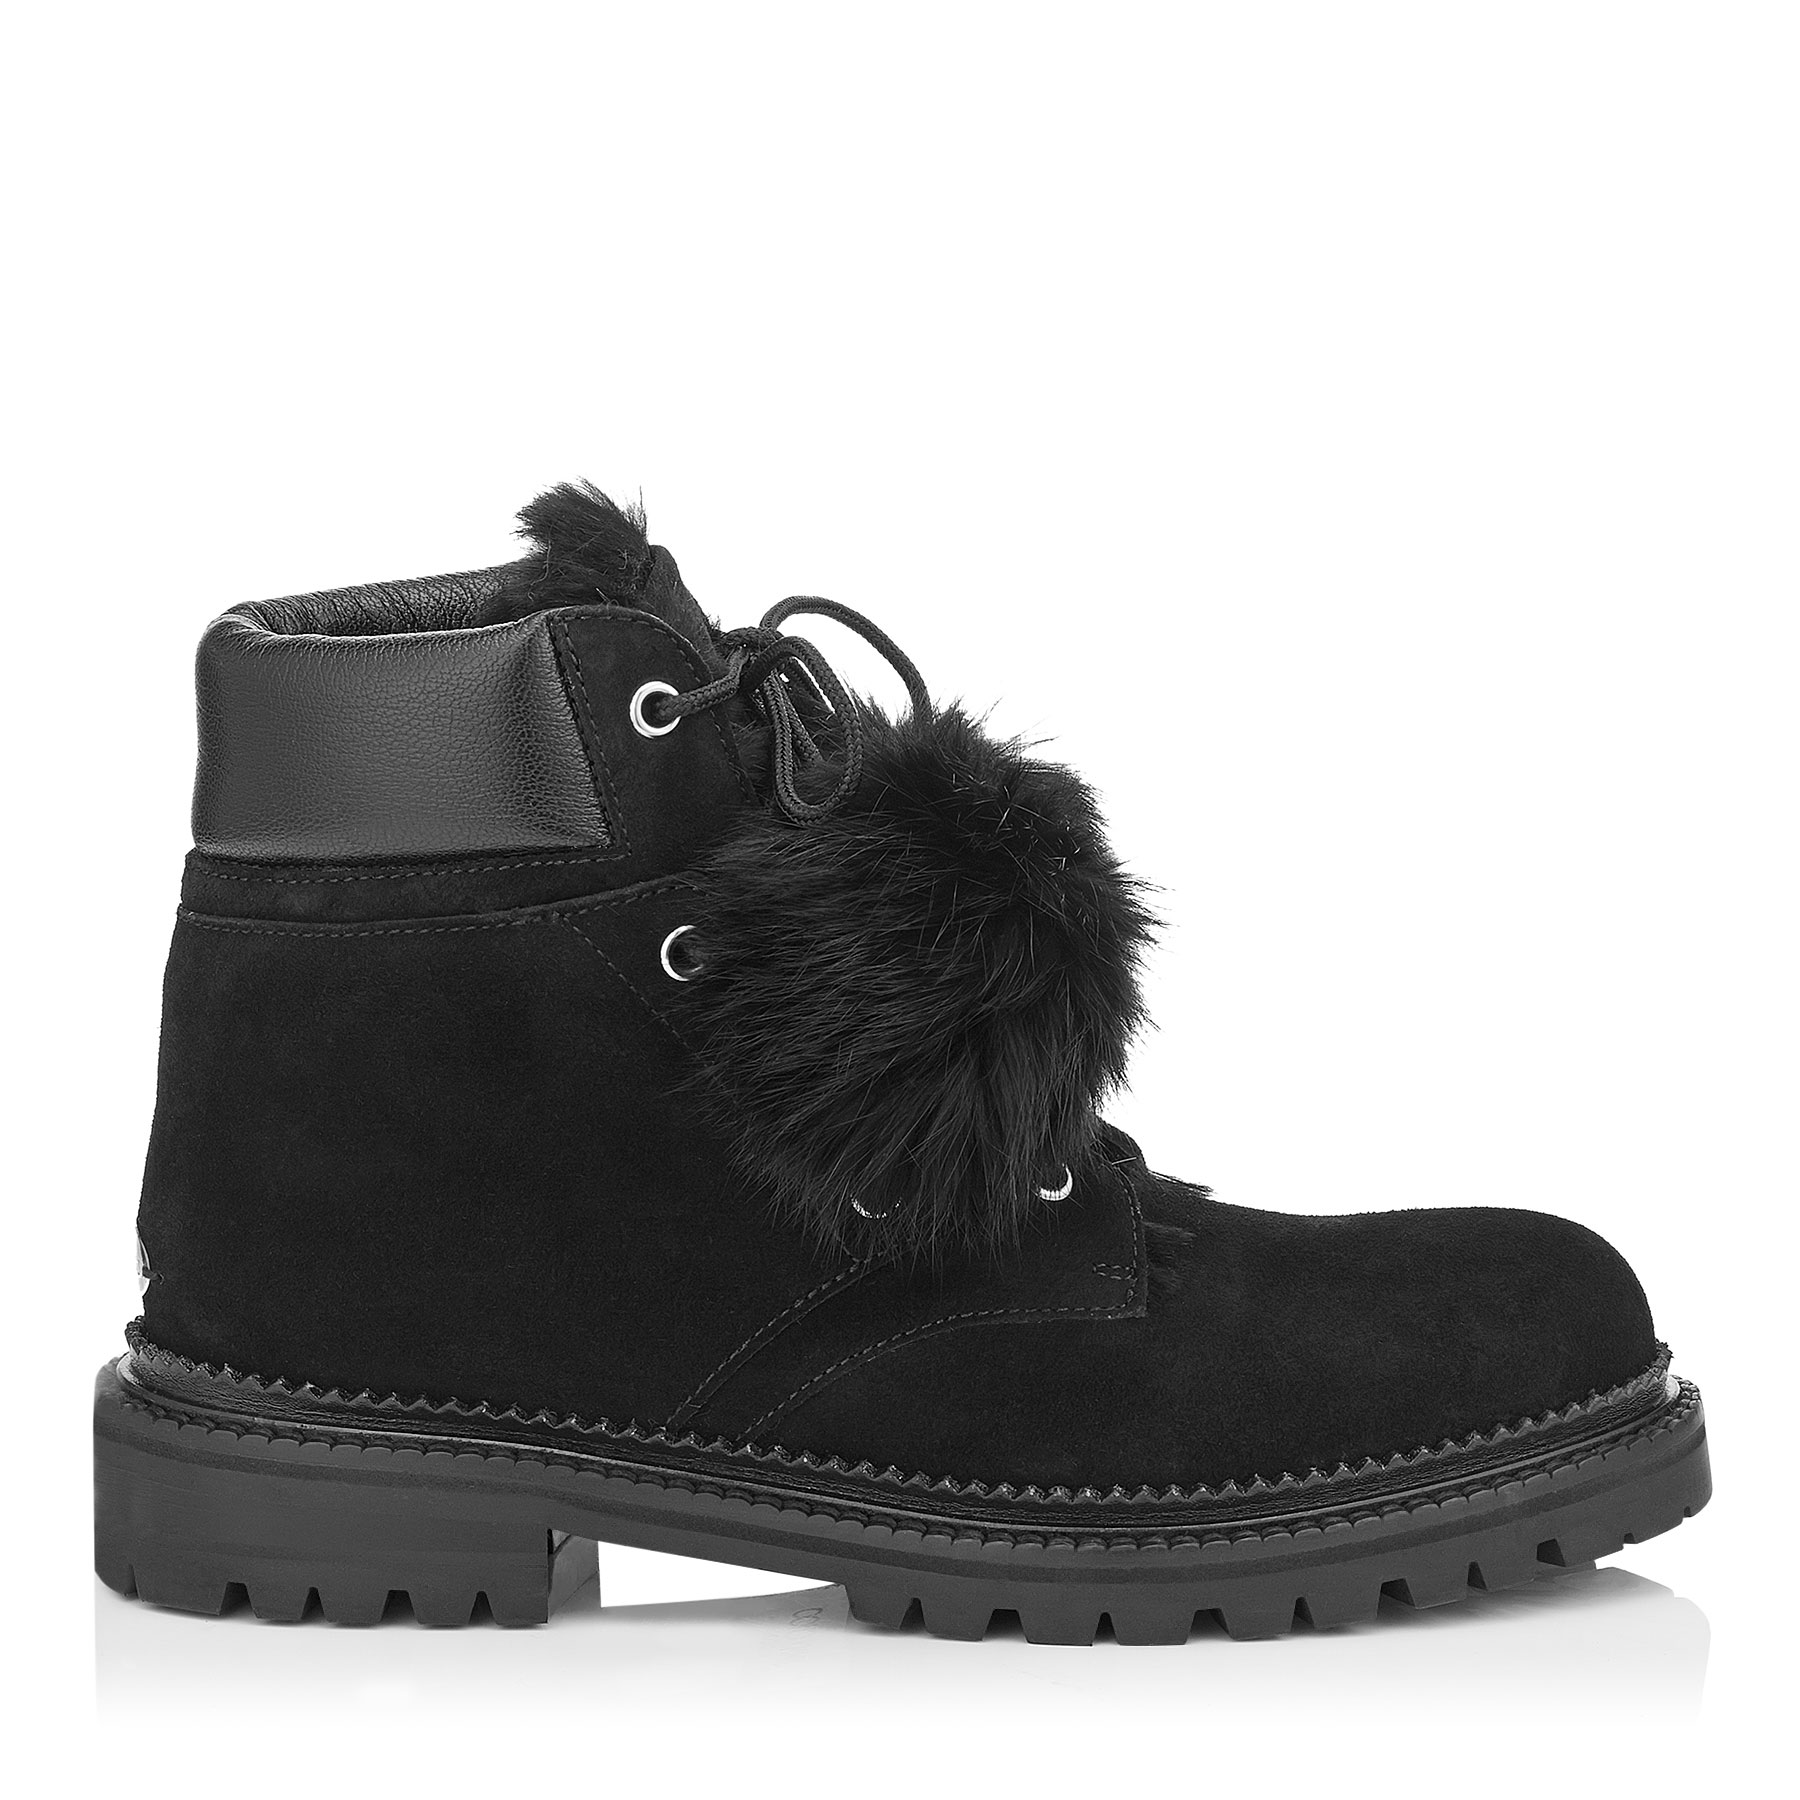 ELBA FLAT Black Suede Boots with Rabbit Fur Lining by Jimmy Choo